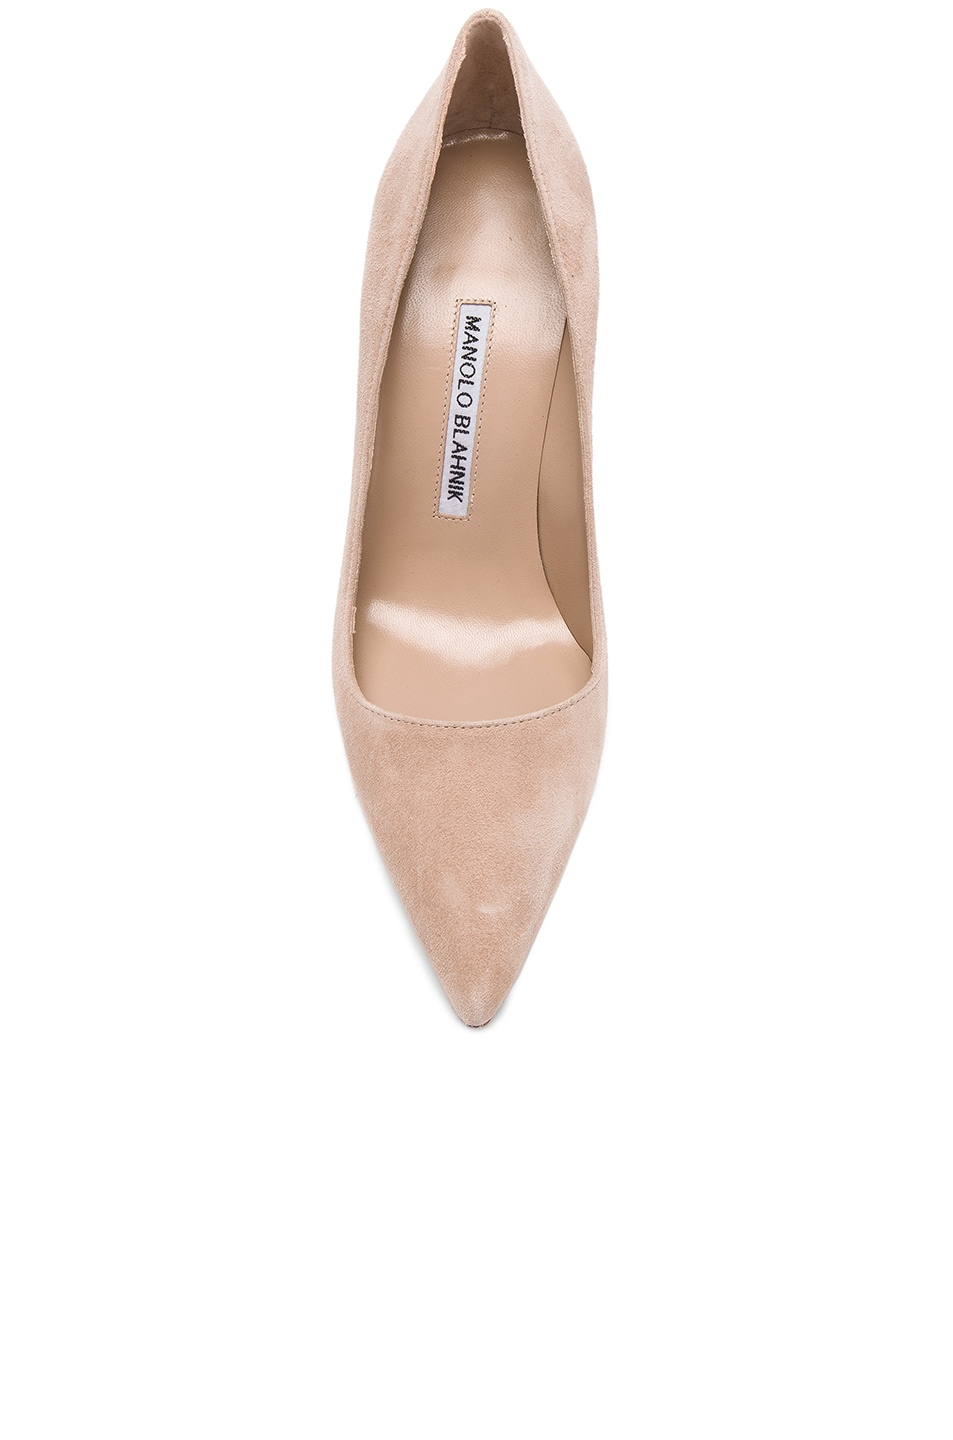 Image 4 of Manolo Blahnik BB 105 Suede Pumps in Nude Suede